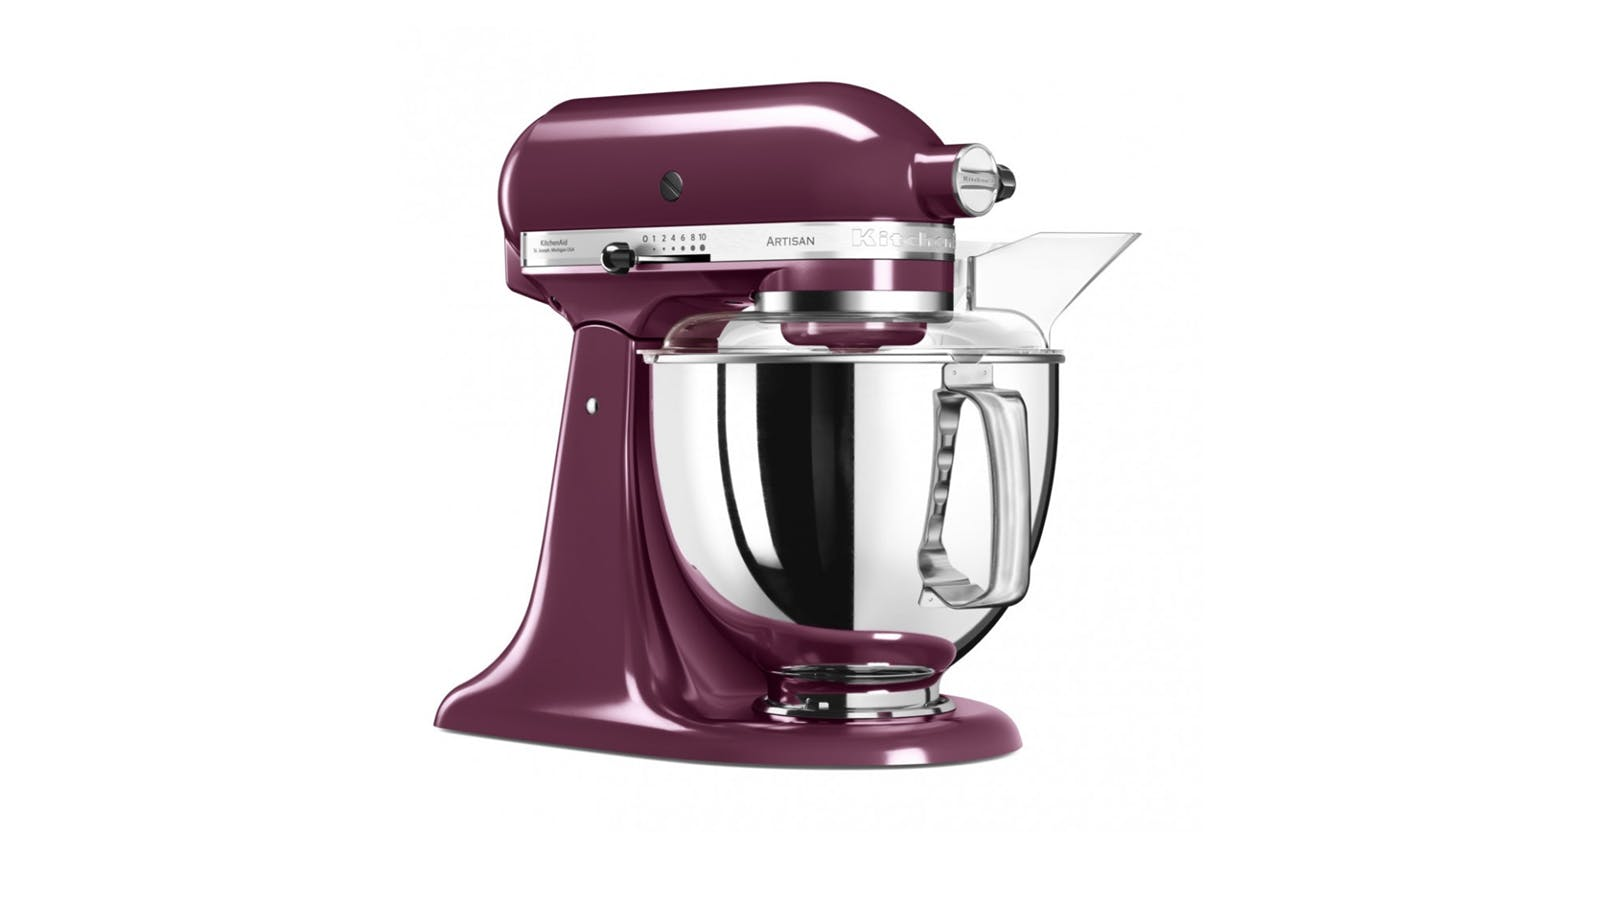 Home Home Appliances Small Kitchen Appliances Mixers Food Processors Kitchenaid Artisan 5ksm175psby5ksm 175psby Stand Mixer